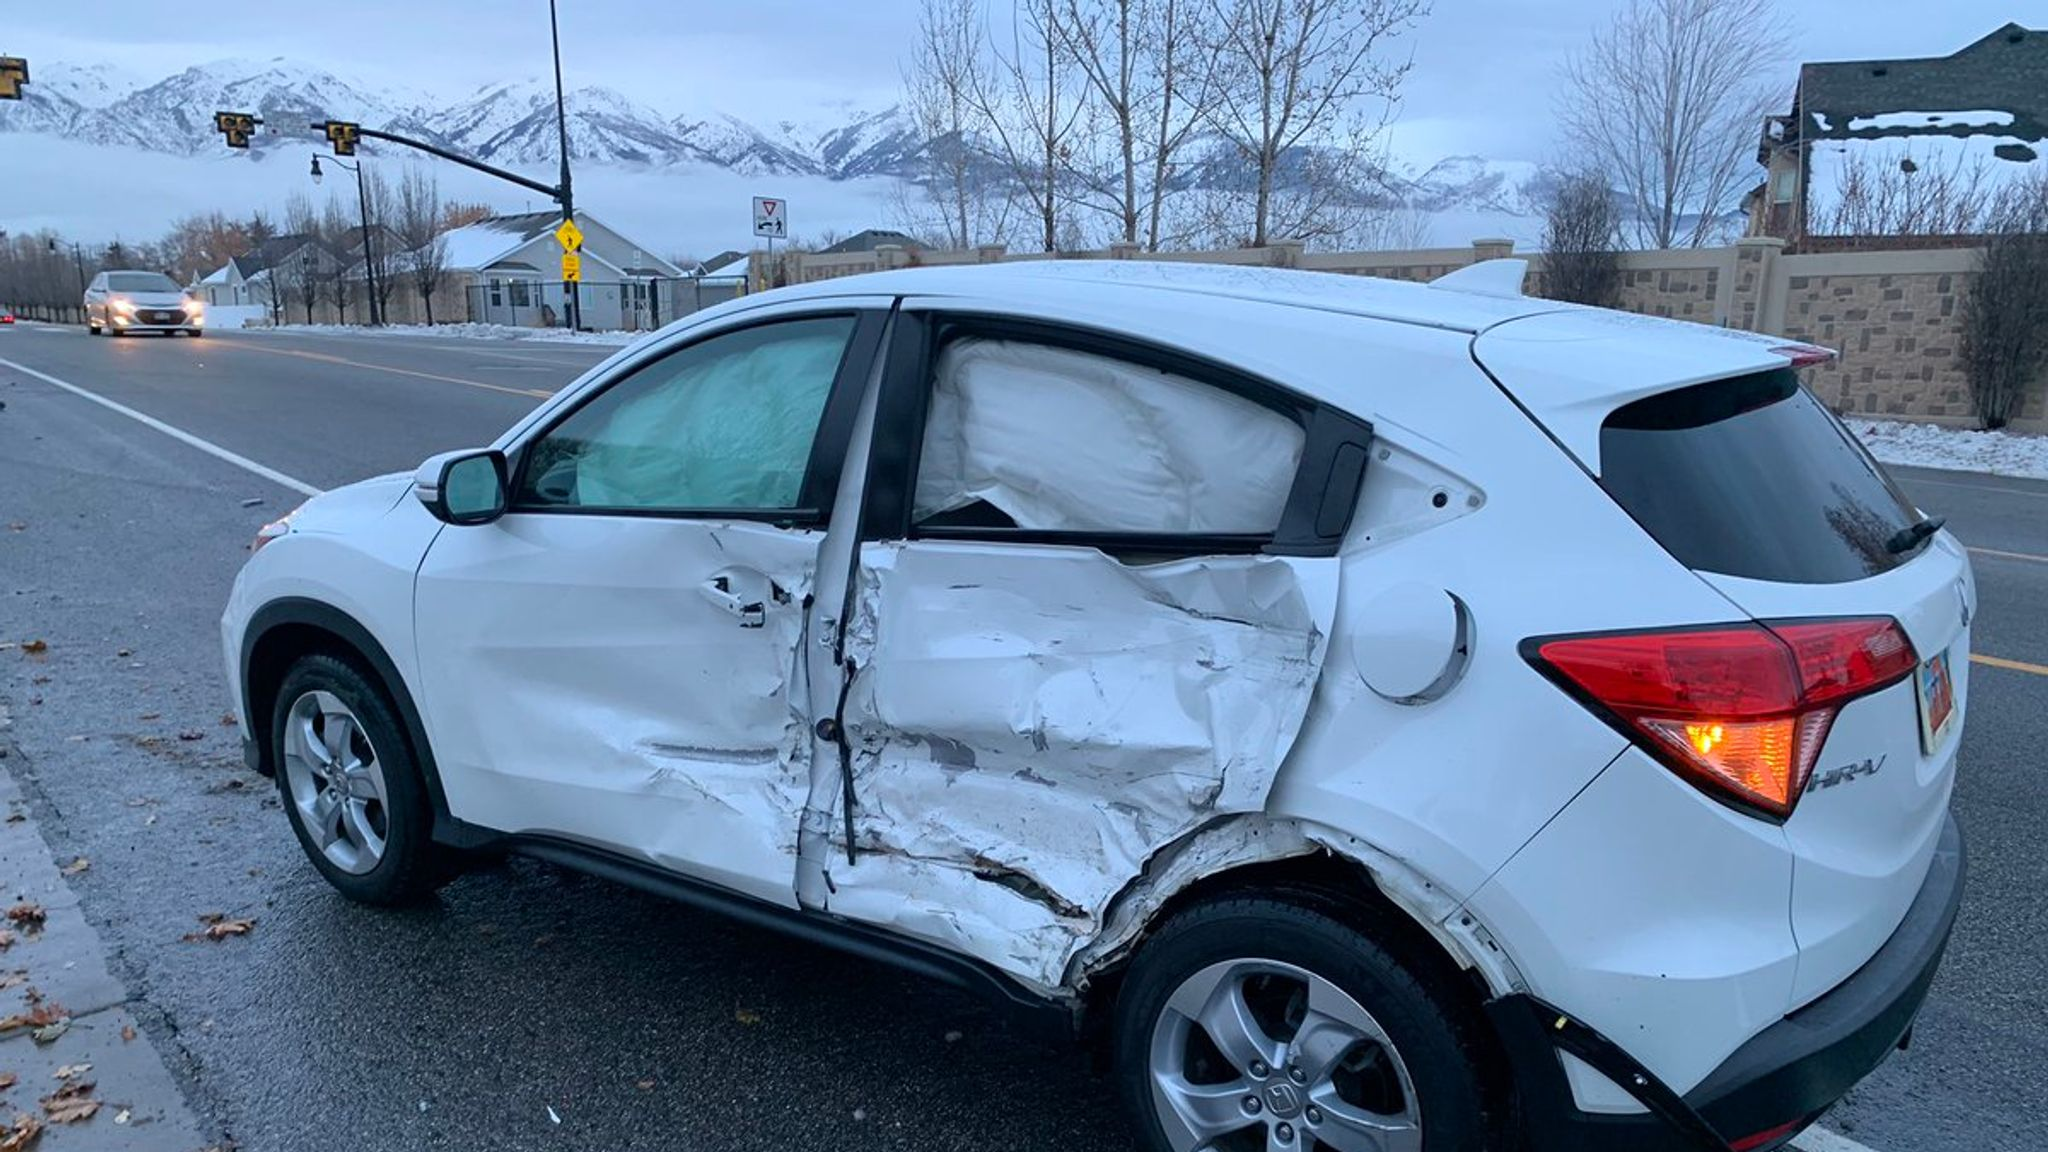 bird box challenge': teen crashes after driving car blindfolded | us